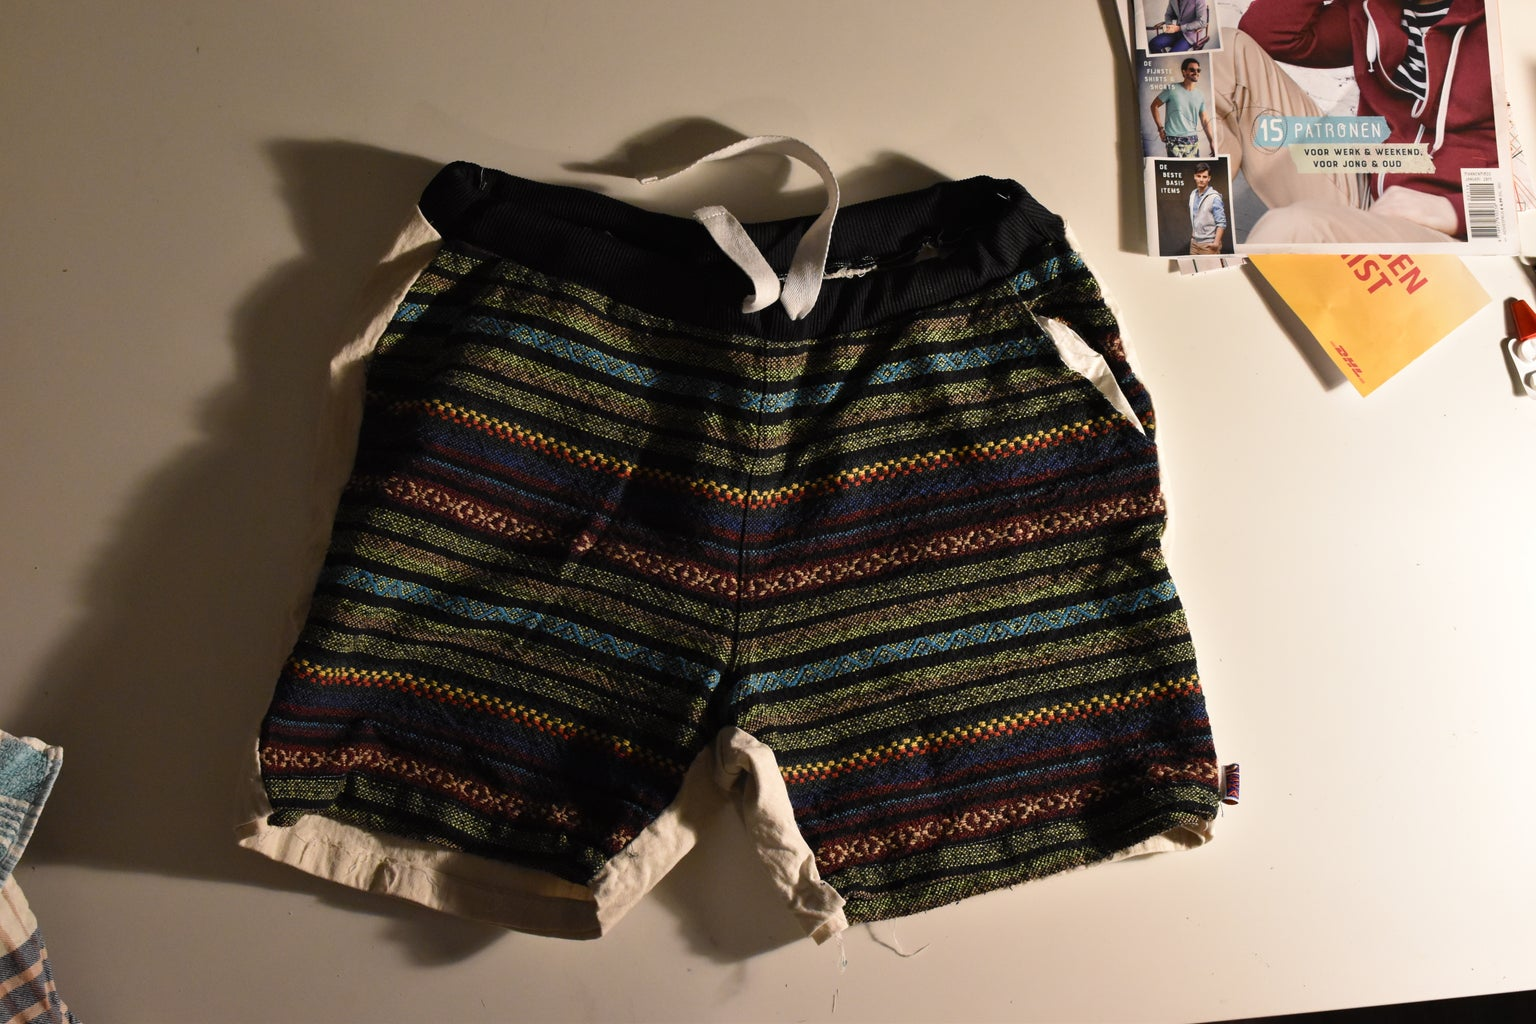 Find an Item of Clothing or Any Textile That Has Some Surfaces Big Enough to Make a Pouch Out Of